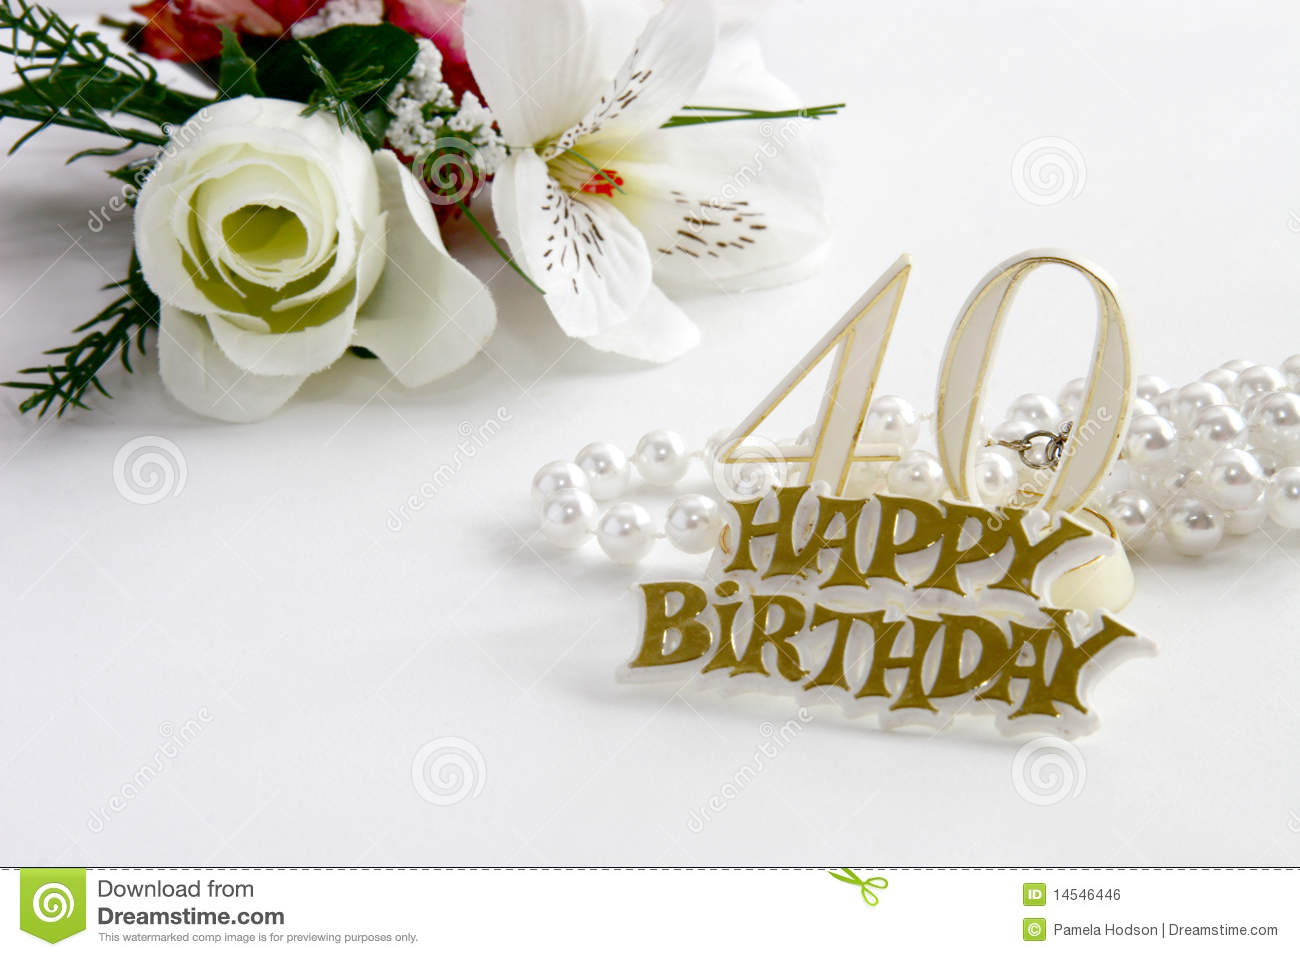 40th birthday background images ; 40th-birthday-sign-pearls-silk-rose-14546446